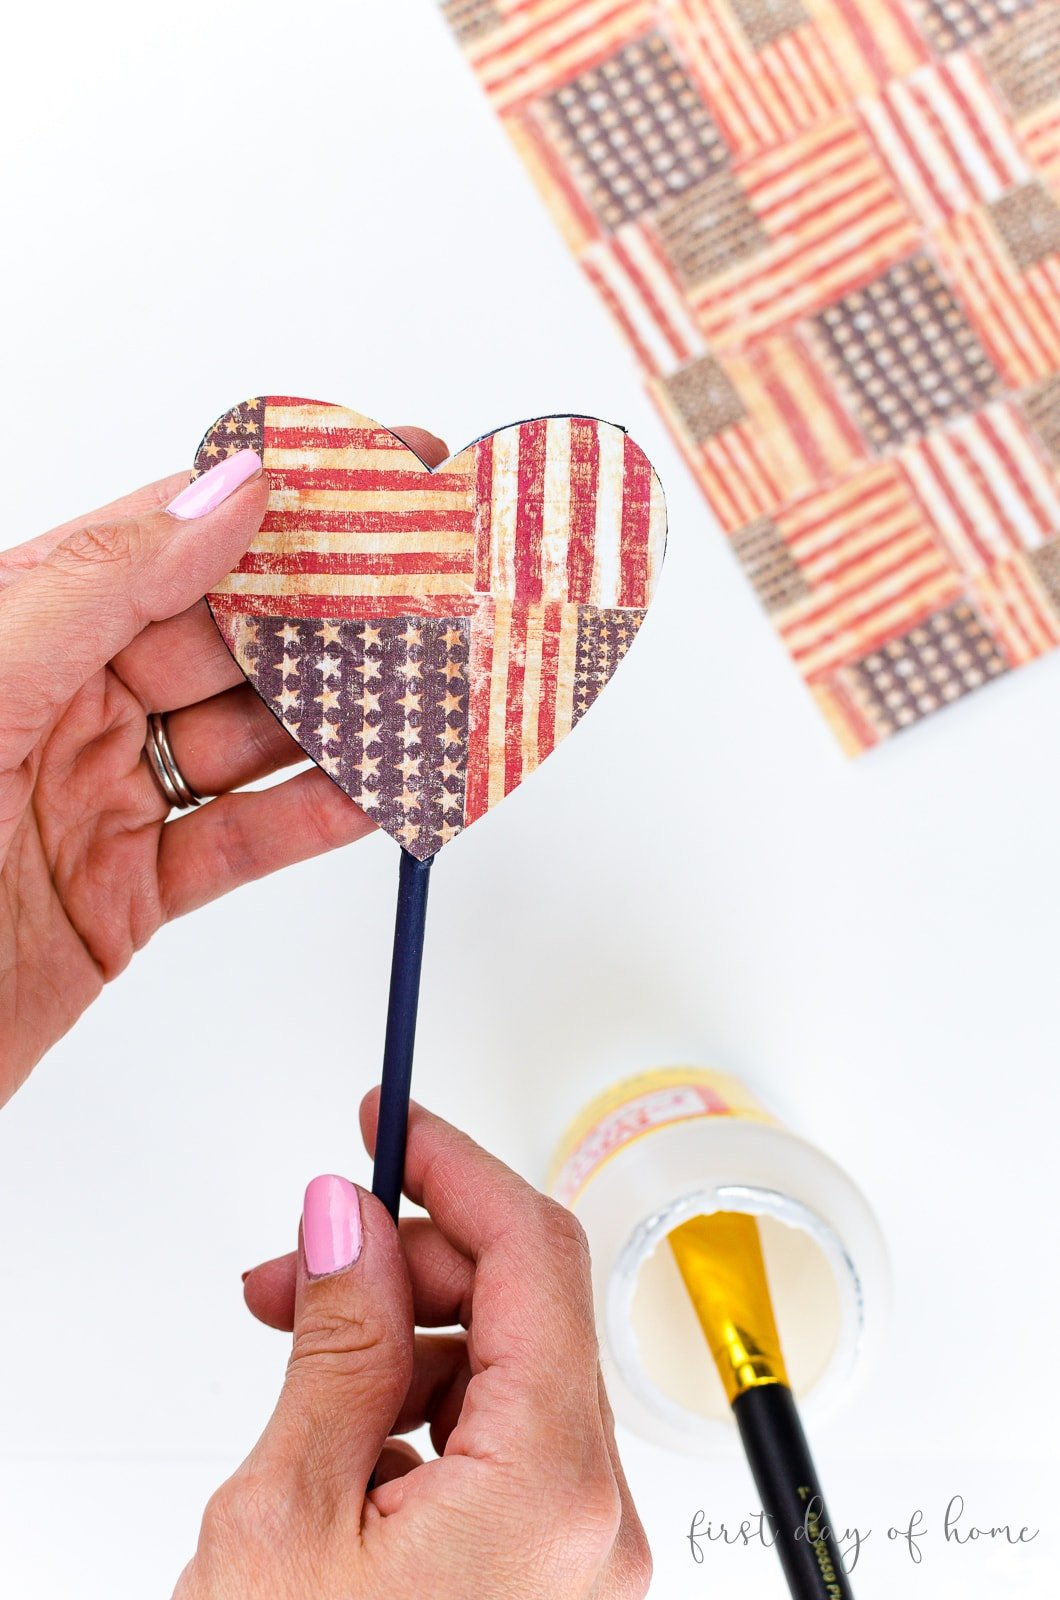 Applying heart shaped scrapbook paper to wooden garden stakes with Mod Podge